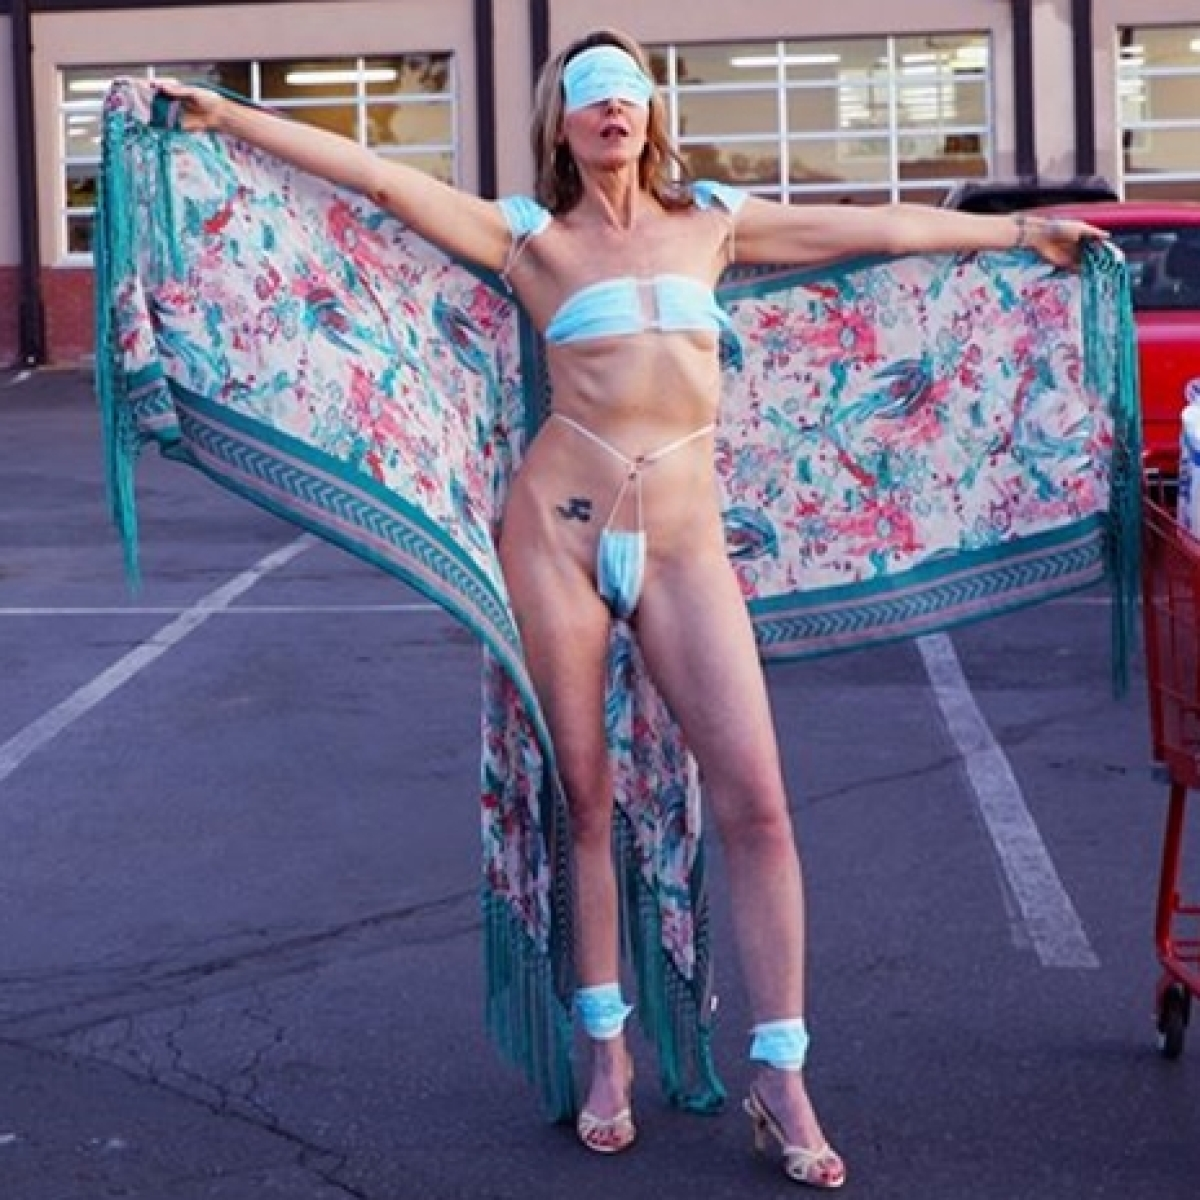 Woman wears bikini made of masks but doesn't cover face to protest against COVID-19 restrictions